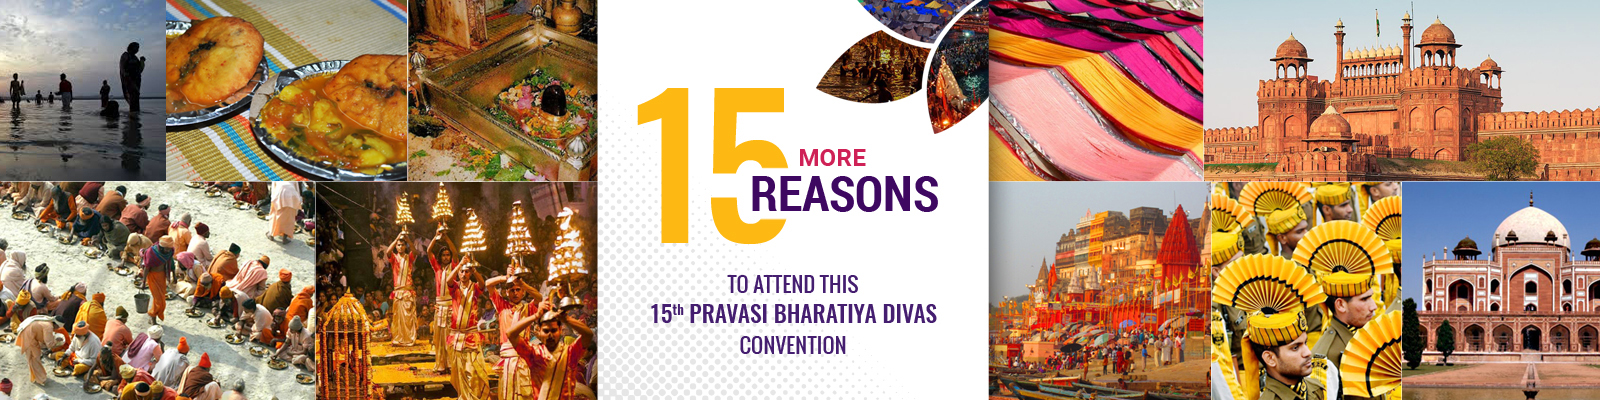 15 reasons to visit Pravasi Bharatiya Divas